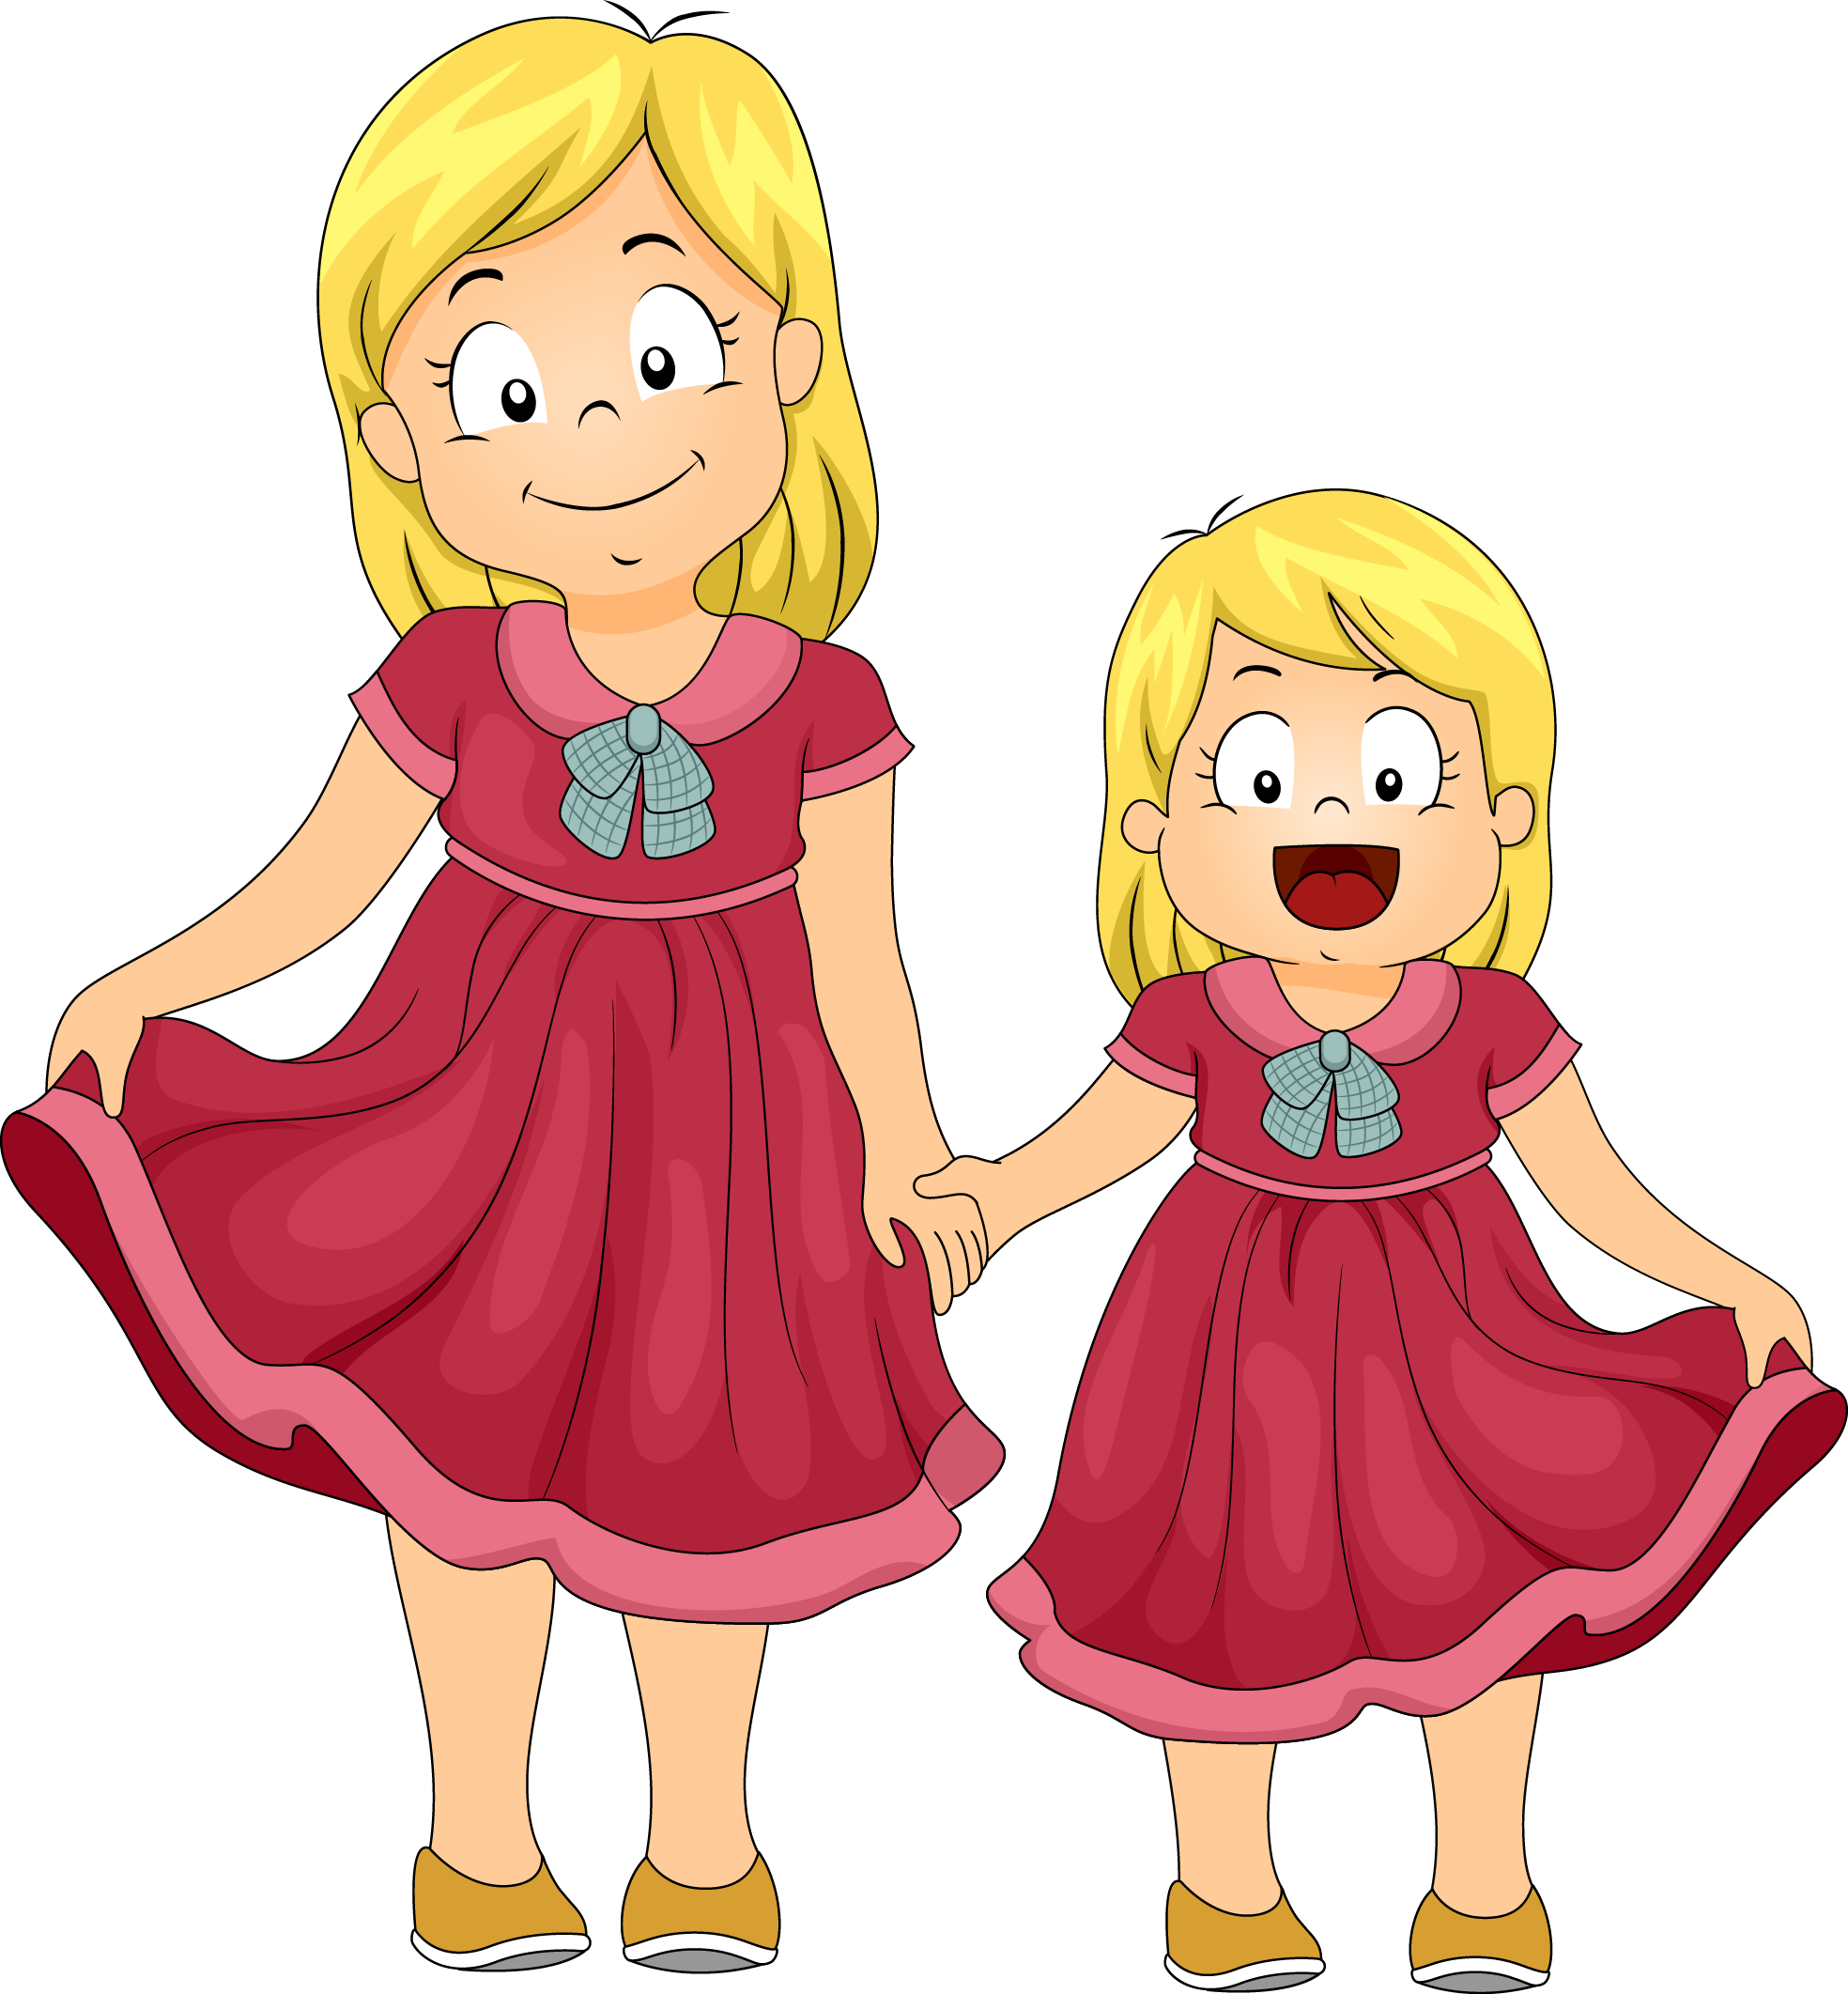 Sisters clipart clipart images gallery for free download.